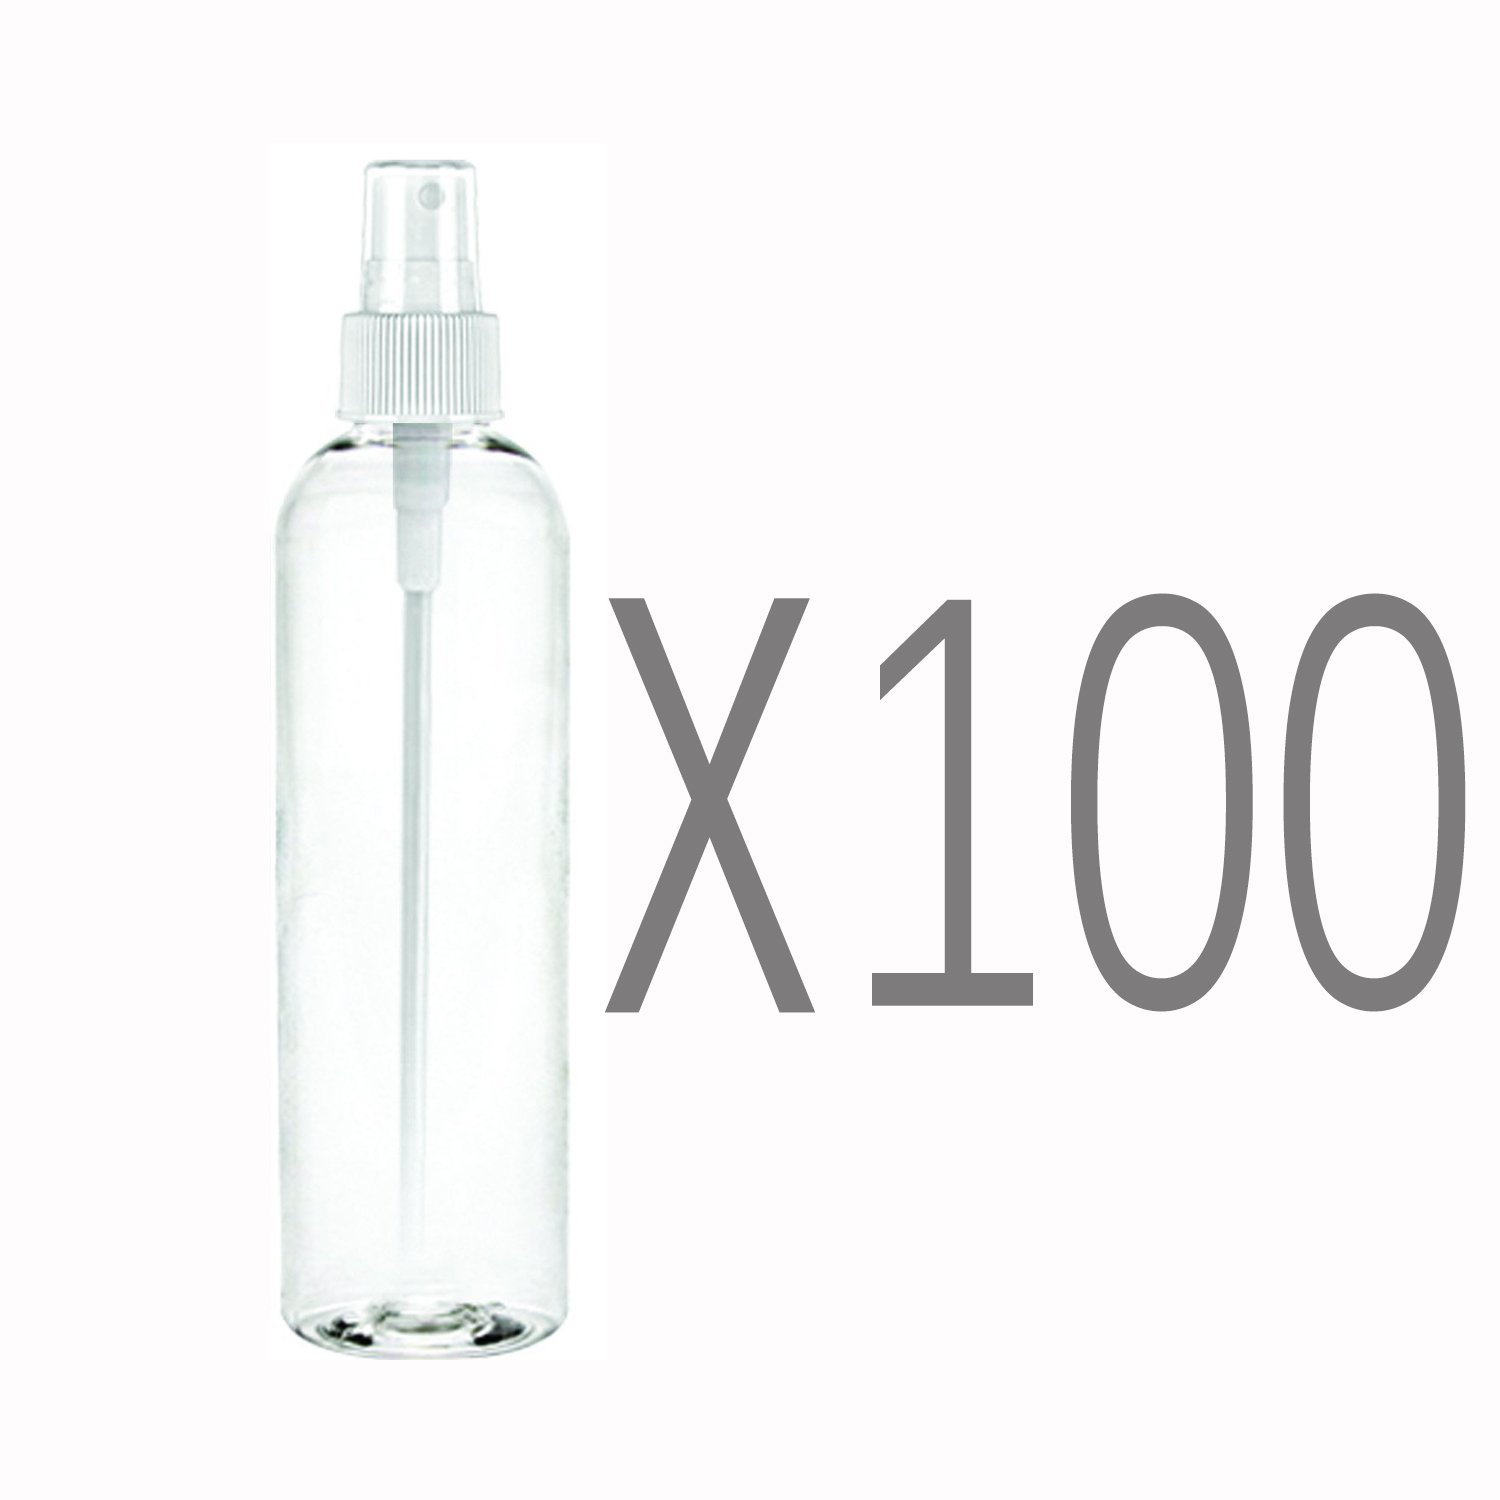 MoYo Natural Labs 4 oz Spray Bottles Fine Mist Empty Travel Containers, BPA Free PET Plastic for Essential Oils and Liquids/Cosmetics (Neck 20-410) (Pack of 100, Clear) by MoYo Natural Labs